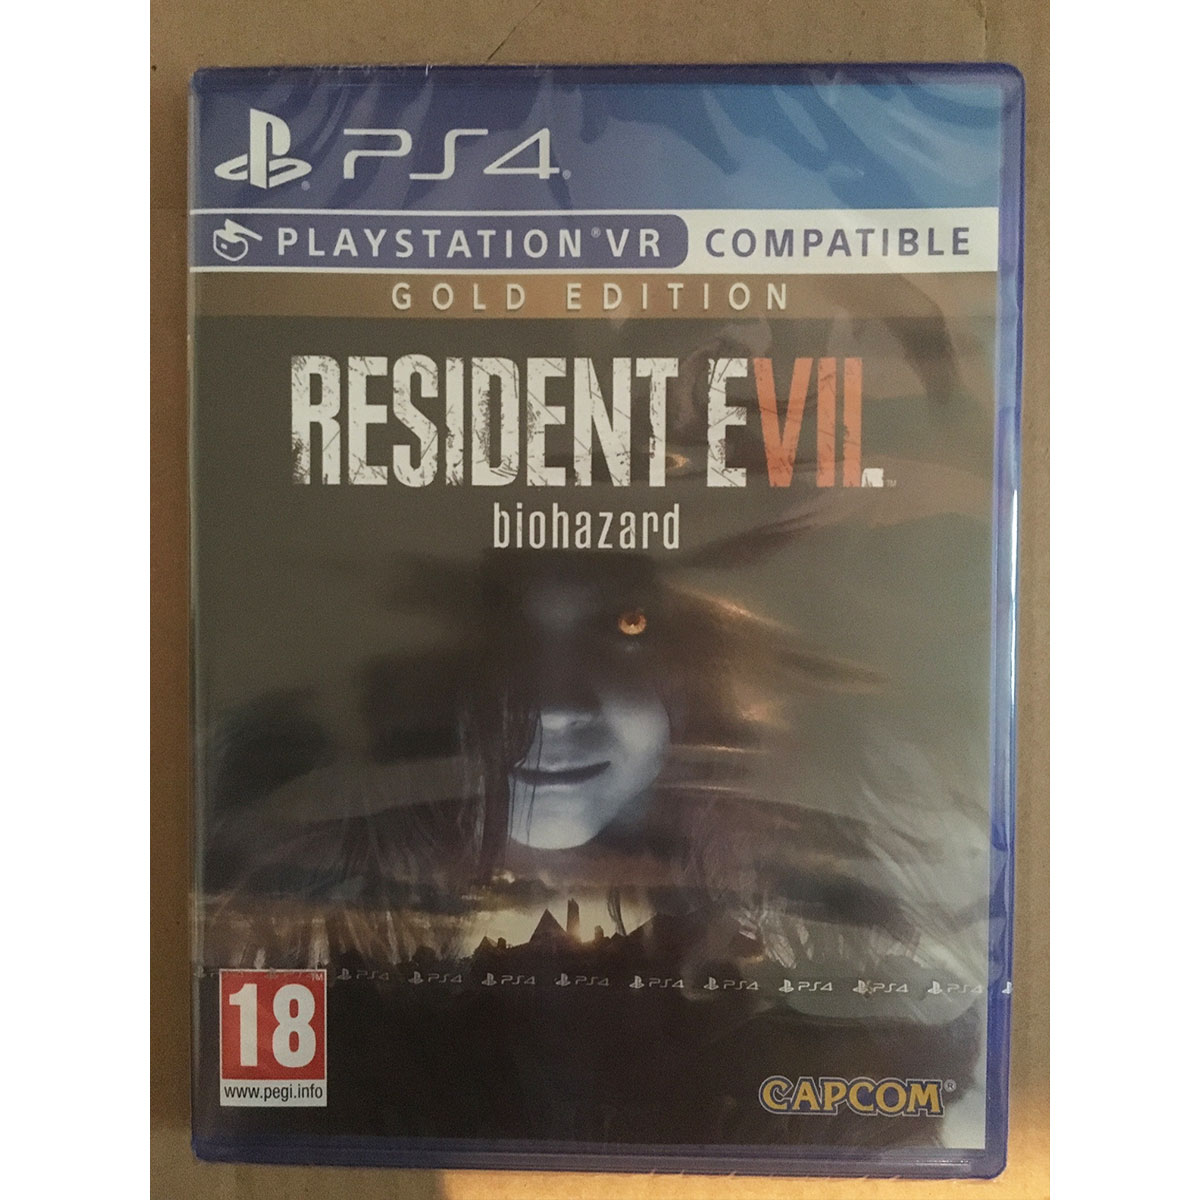 Resident Evil 7 Biohazard Gold Edition Ps4 Vr Compatible New And